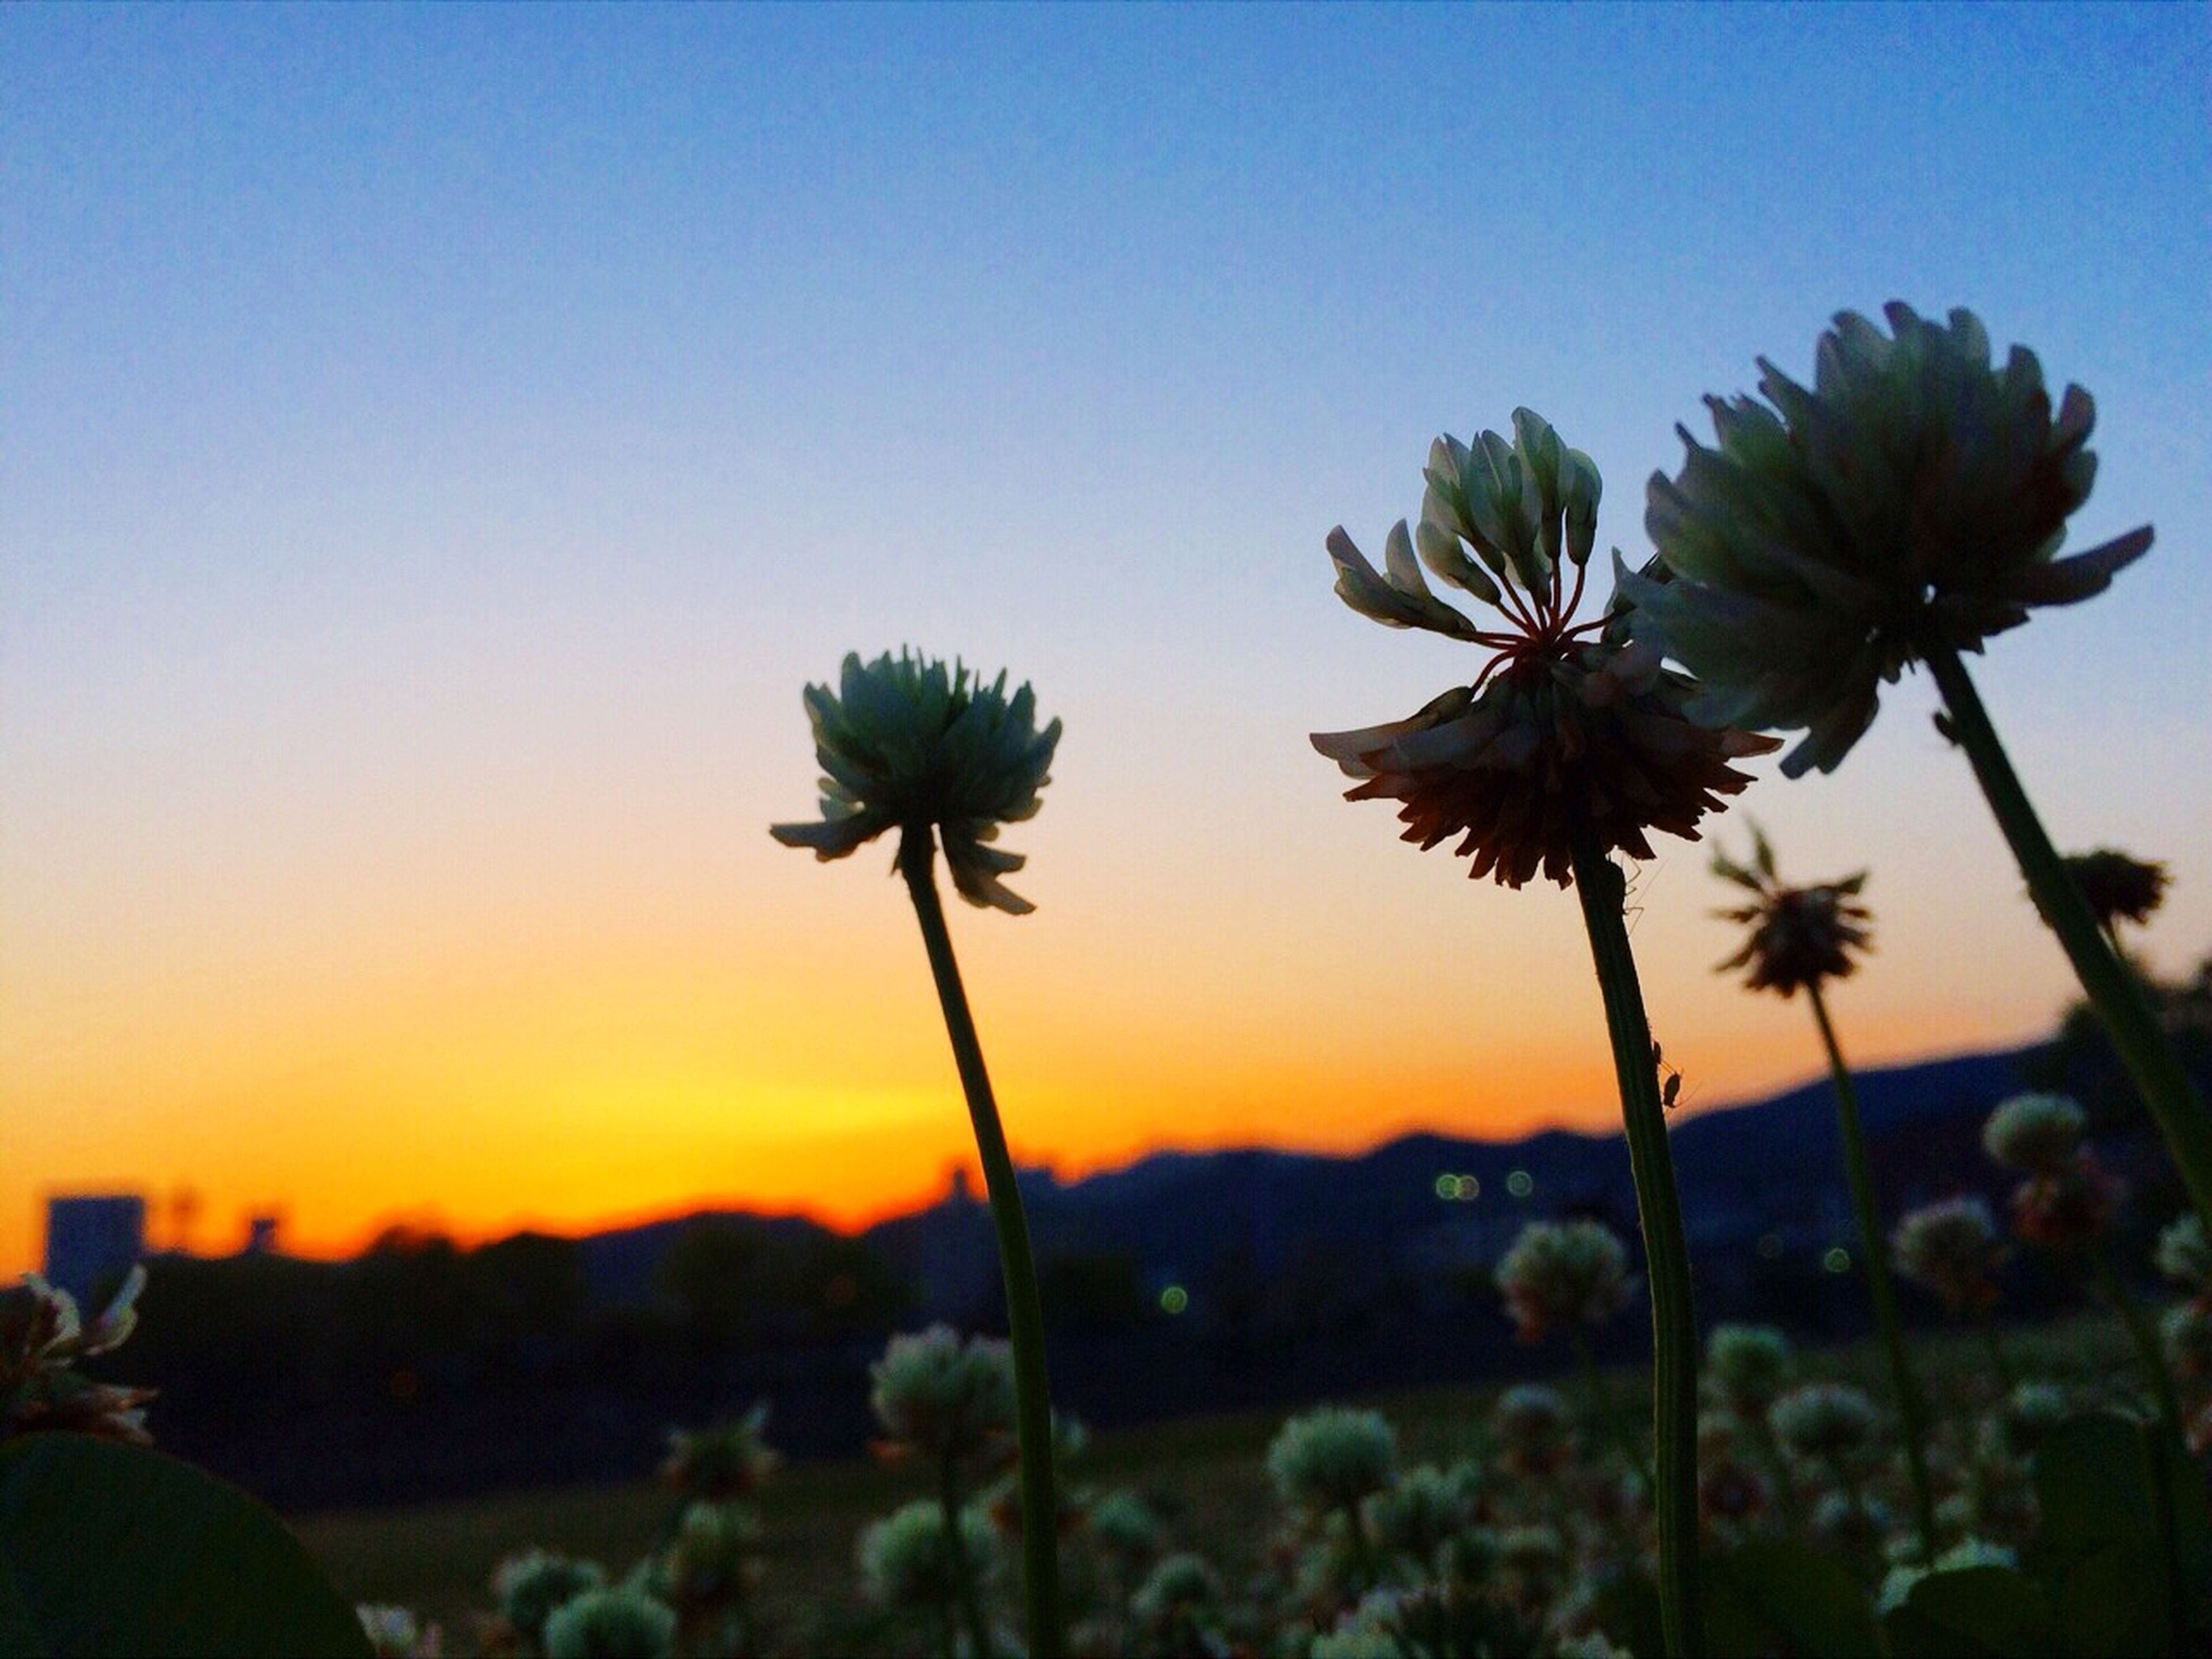 flower, growth, sunset, beauty in nature, clear sky, nature, focus on foreground, plant, stem, freshness, fragility, tranquility, sky, tranquil scene, scenics, close-up, copy space, landscape, field, flower head